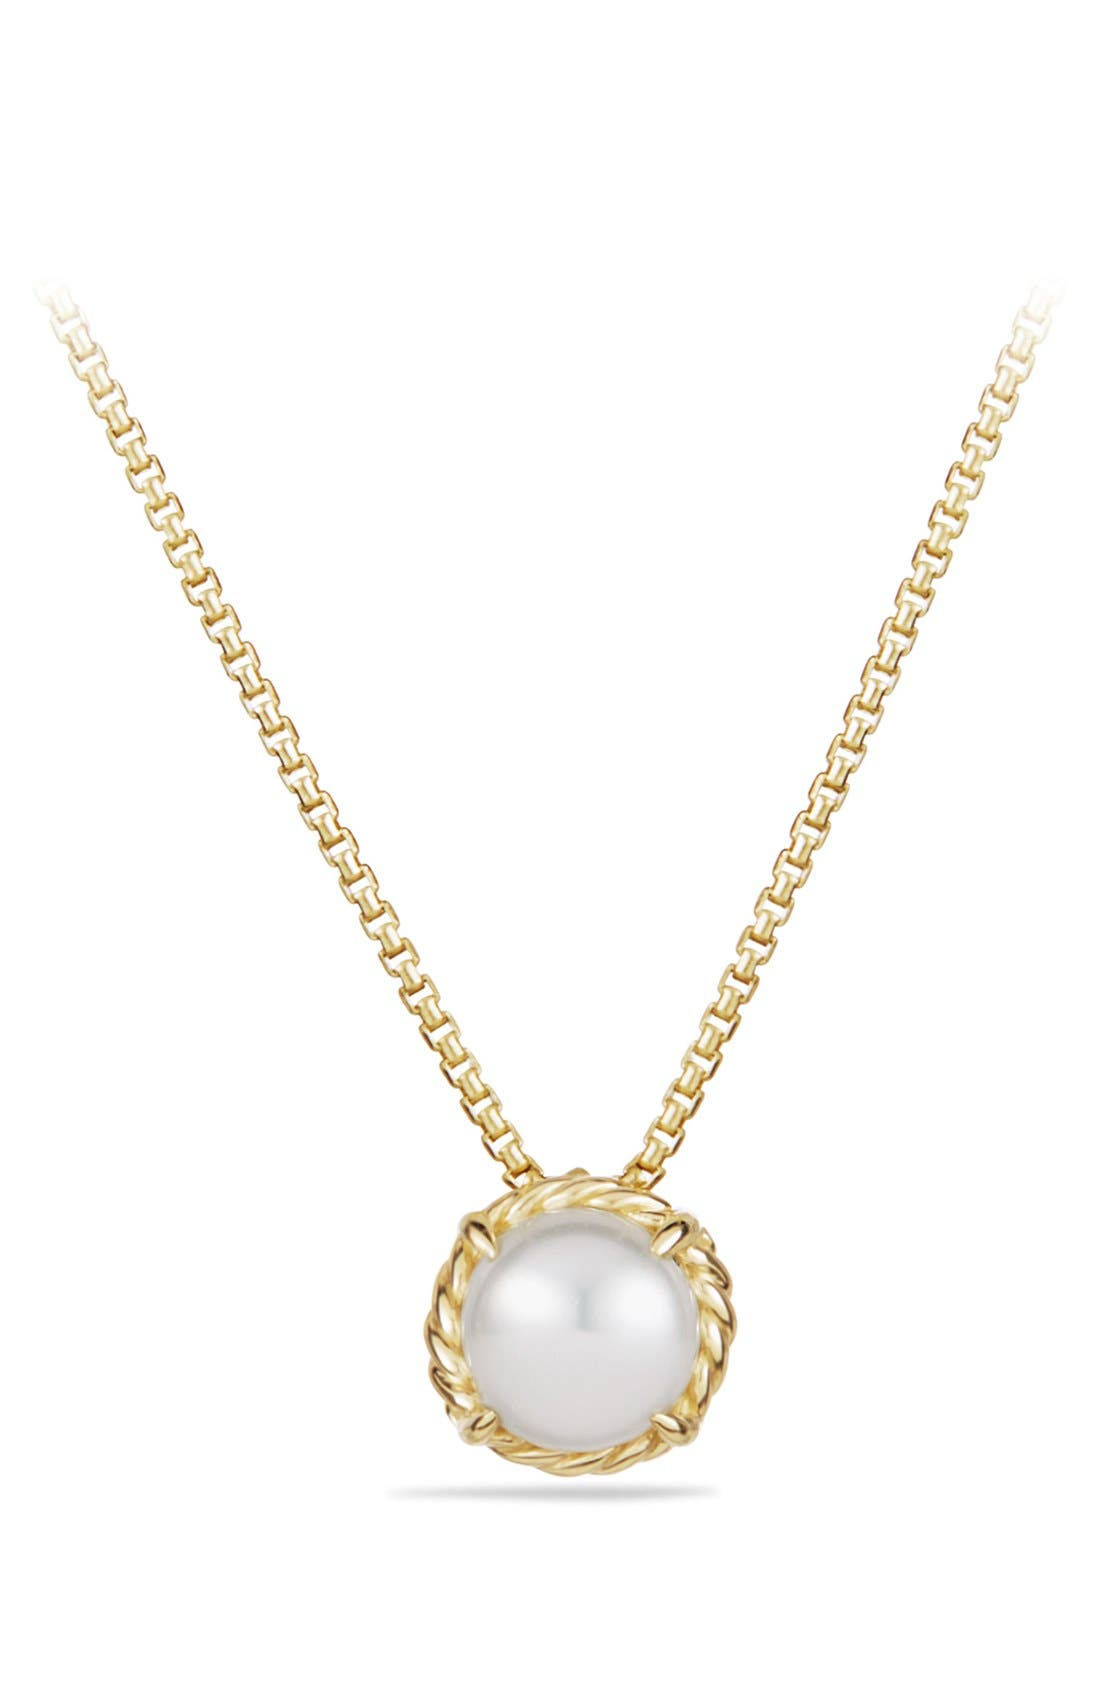 DAVID YURMAN,                             'Châtelaine' Pendant Necklace with Freshwater Pearl in 18K Gold,                             Main thumbnail 1, color,                             900